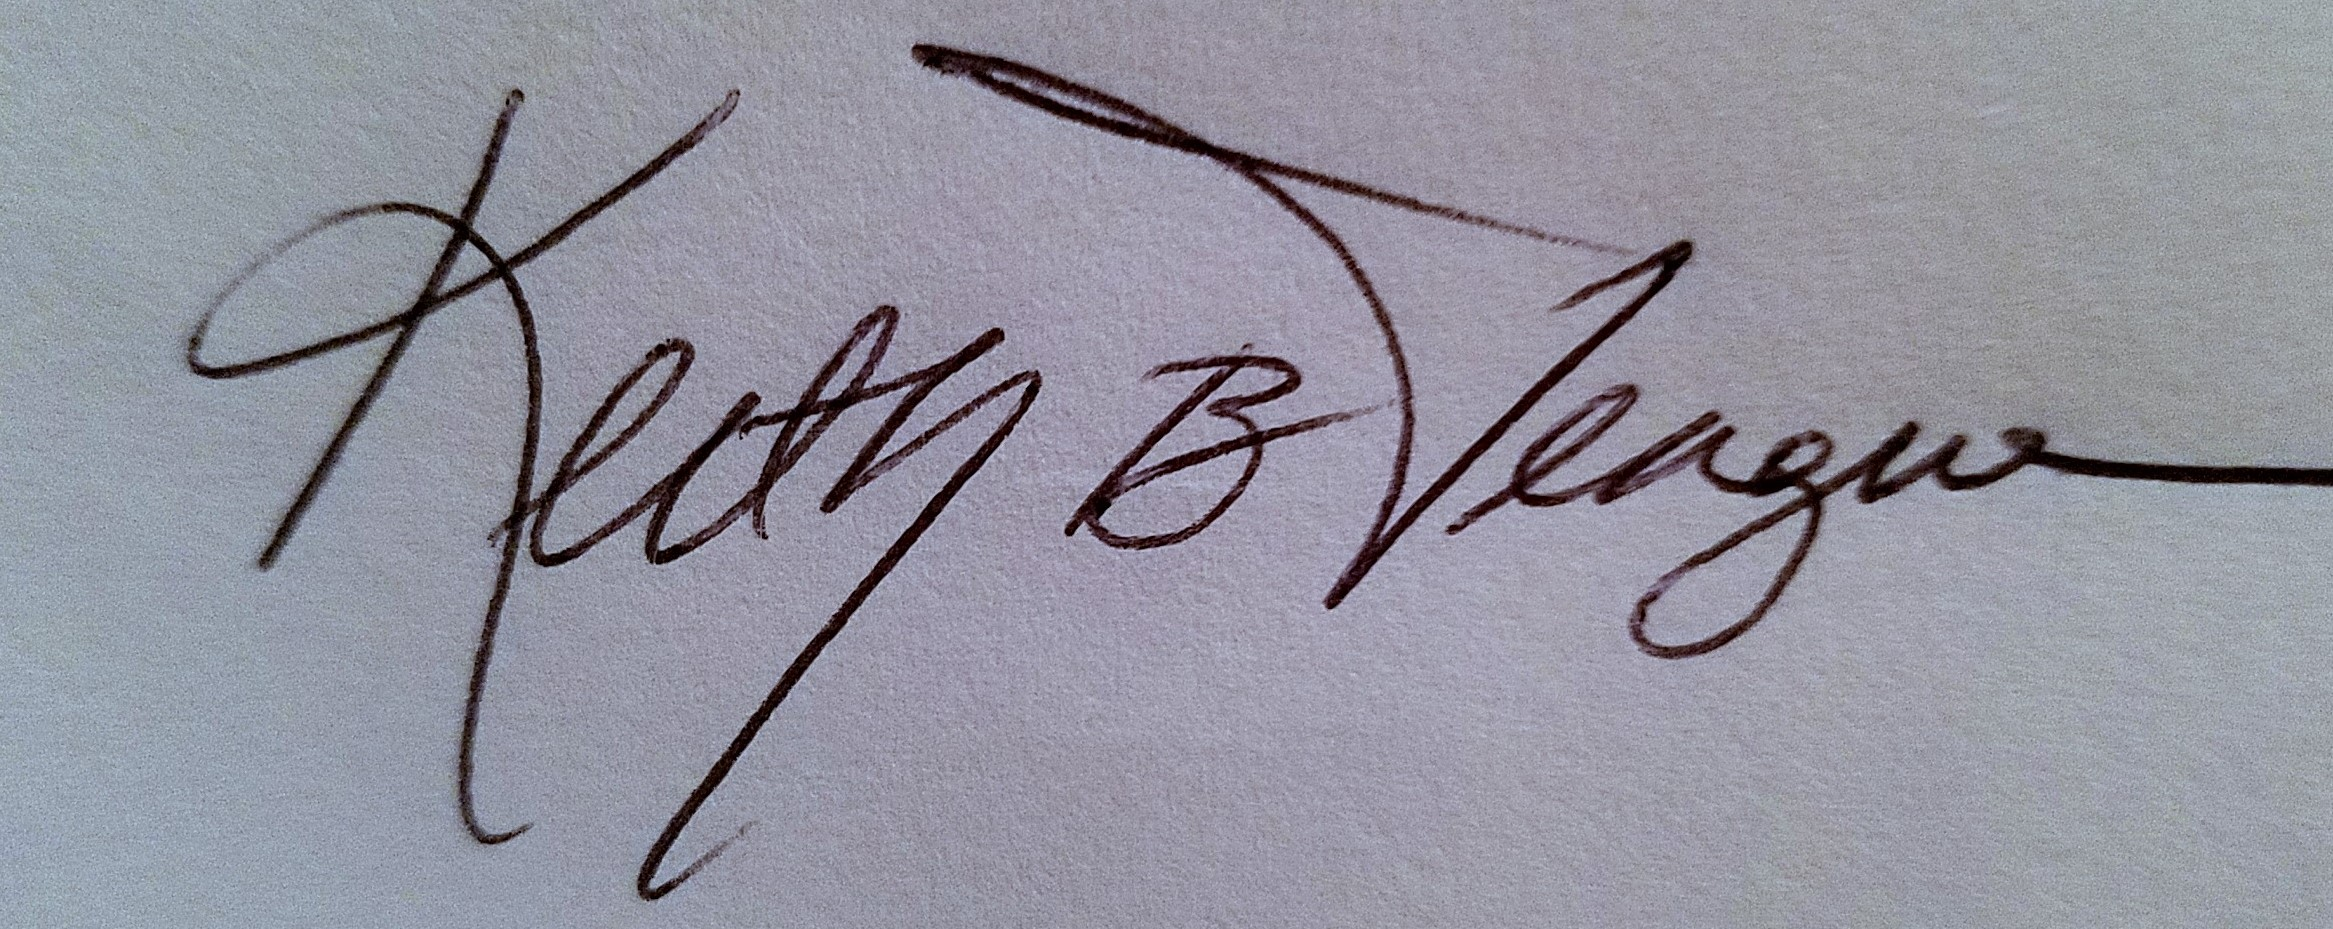 Keith Teague Signature